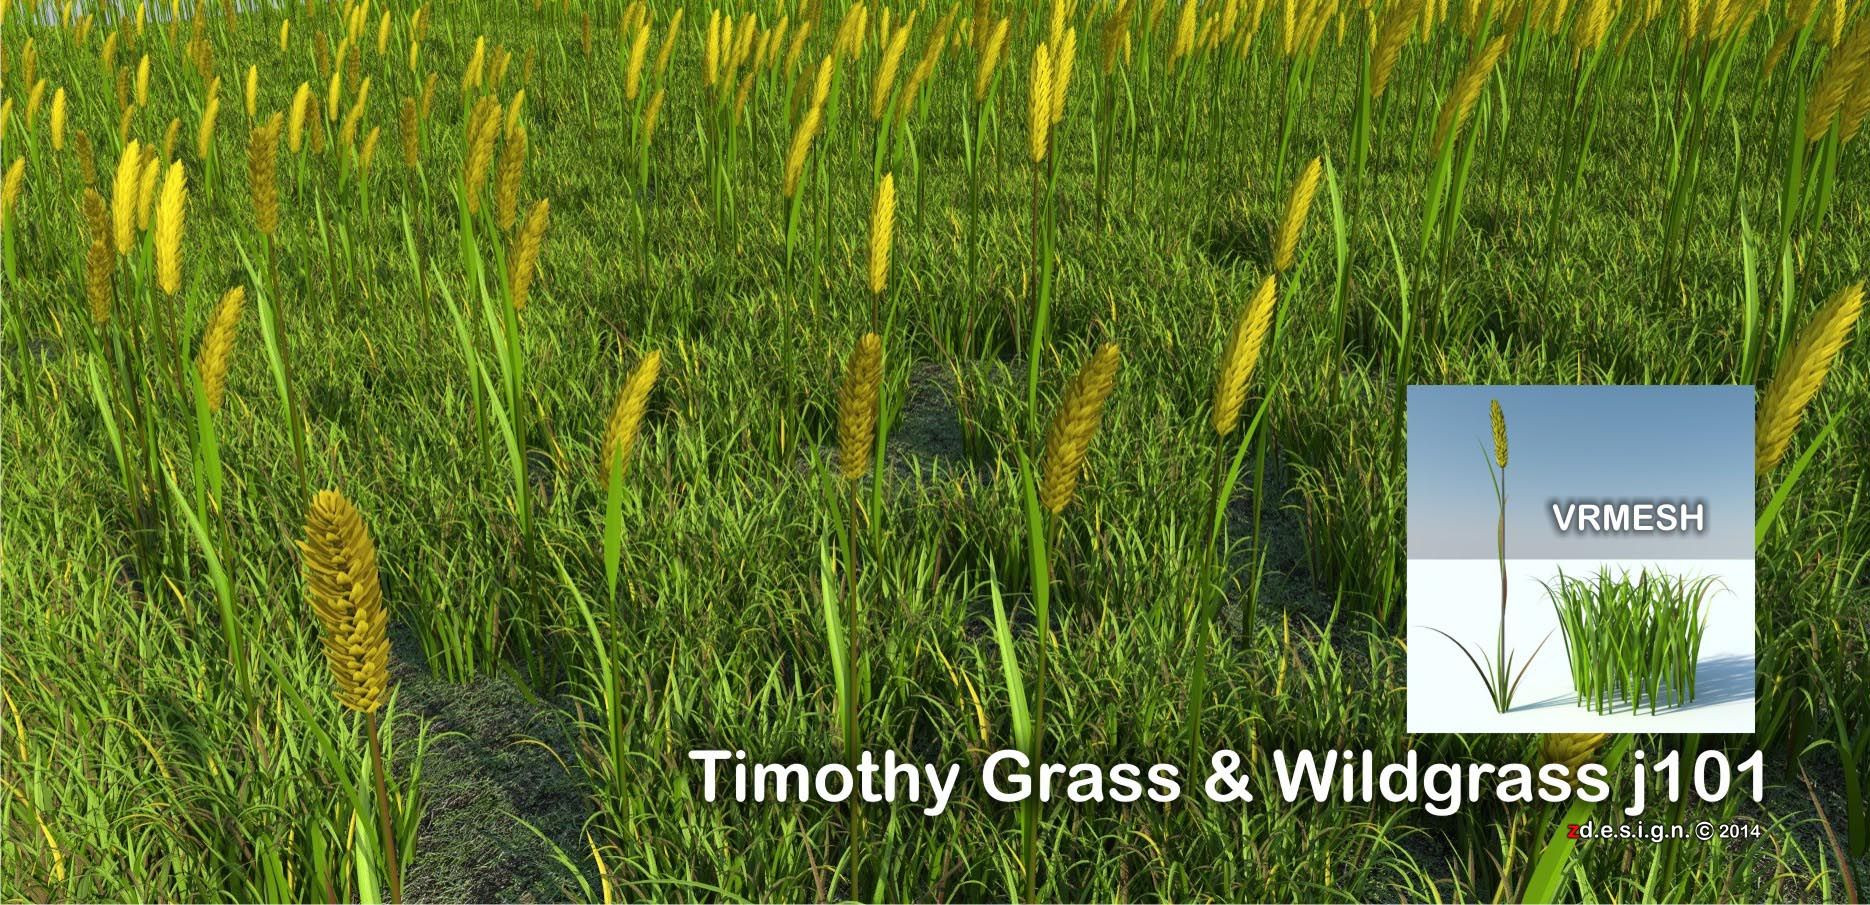 http://www.4shared.com/rar/EOFVQE6Kce/zdesign_Timothy_grass_wild_gra.html